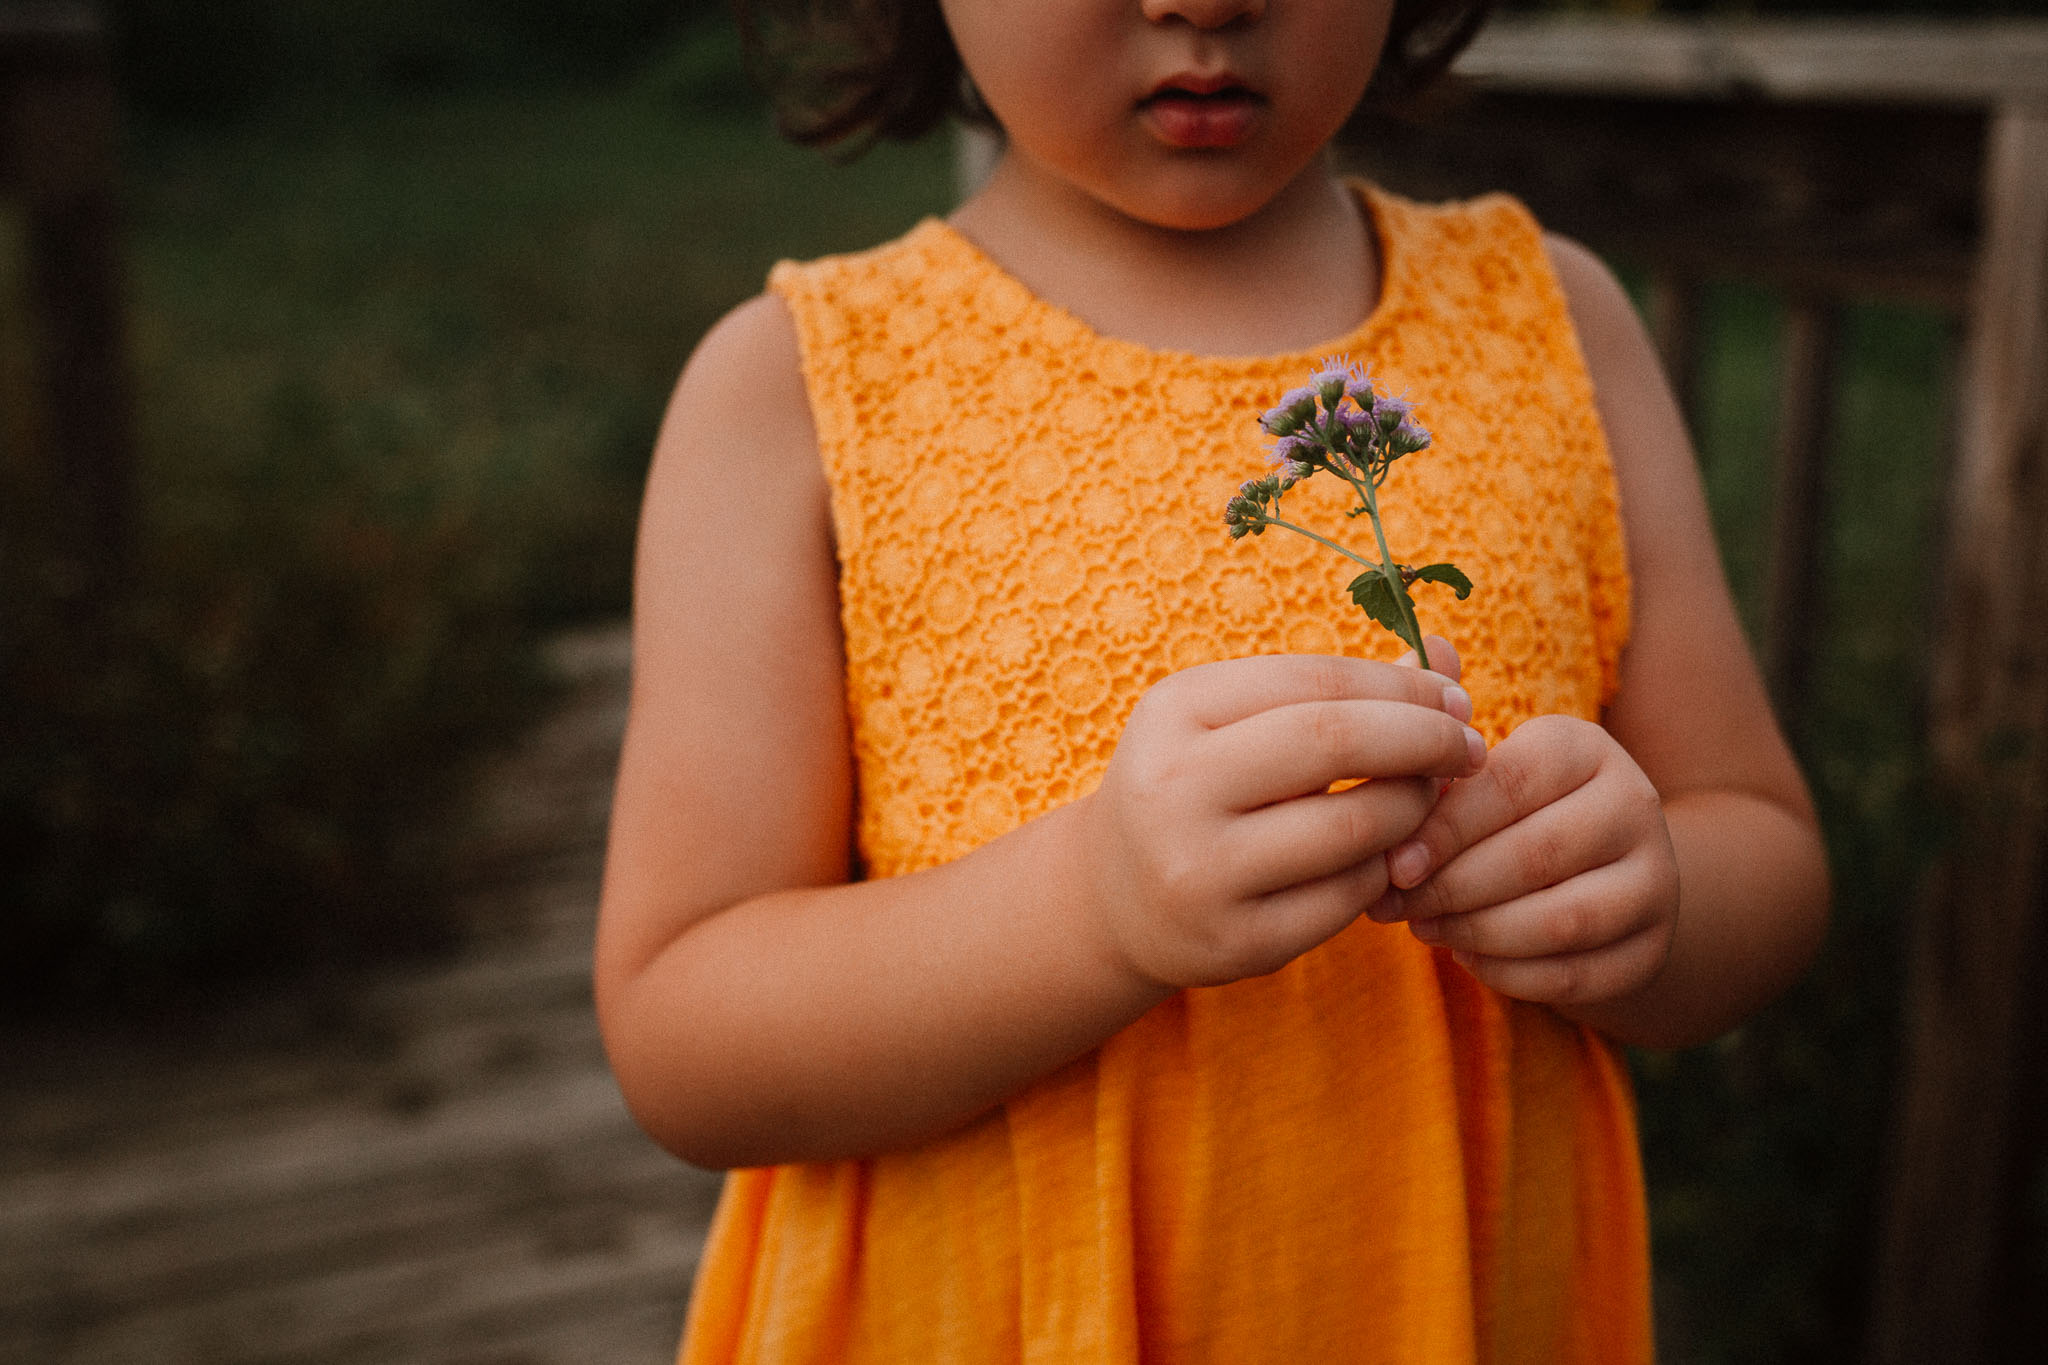 wildflowers girl hands details portrait Claude Moore Park Heritage Farm Museum Sterling Virginia Lifestyle Documentary Fall Family Marti Austin Photography